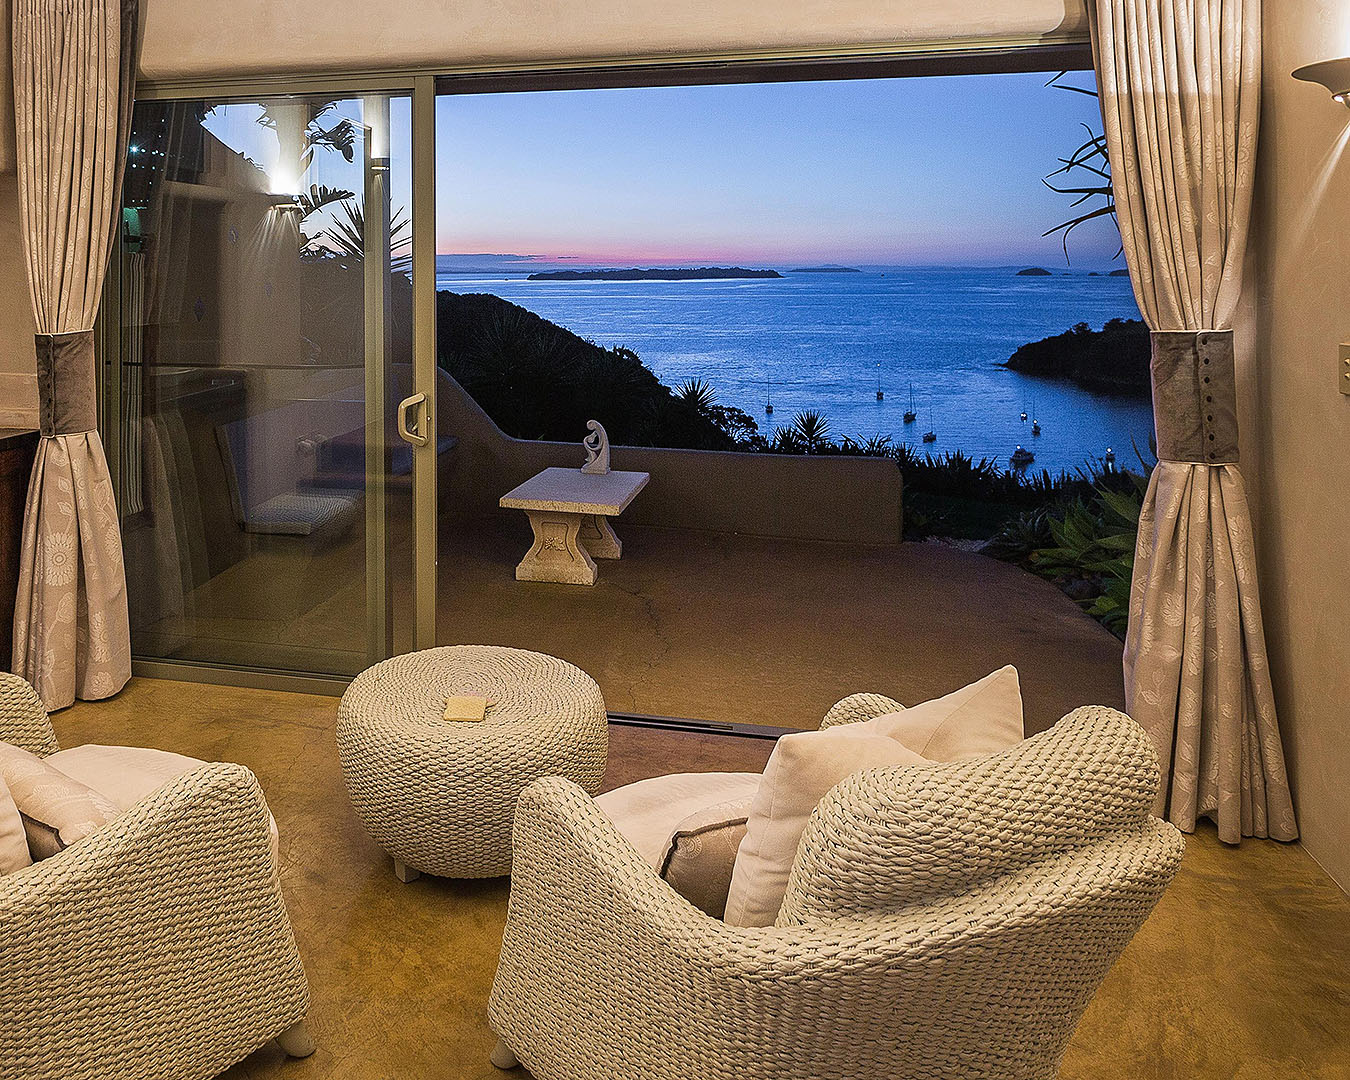 A room looks out on a stunning sunset on Delamore Lodge on Waiheke Island.